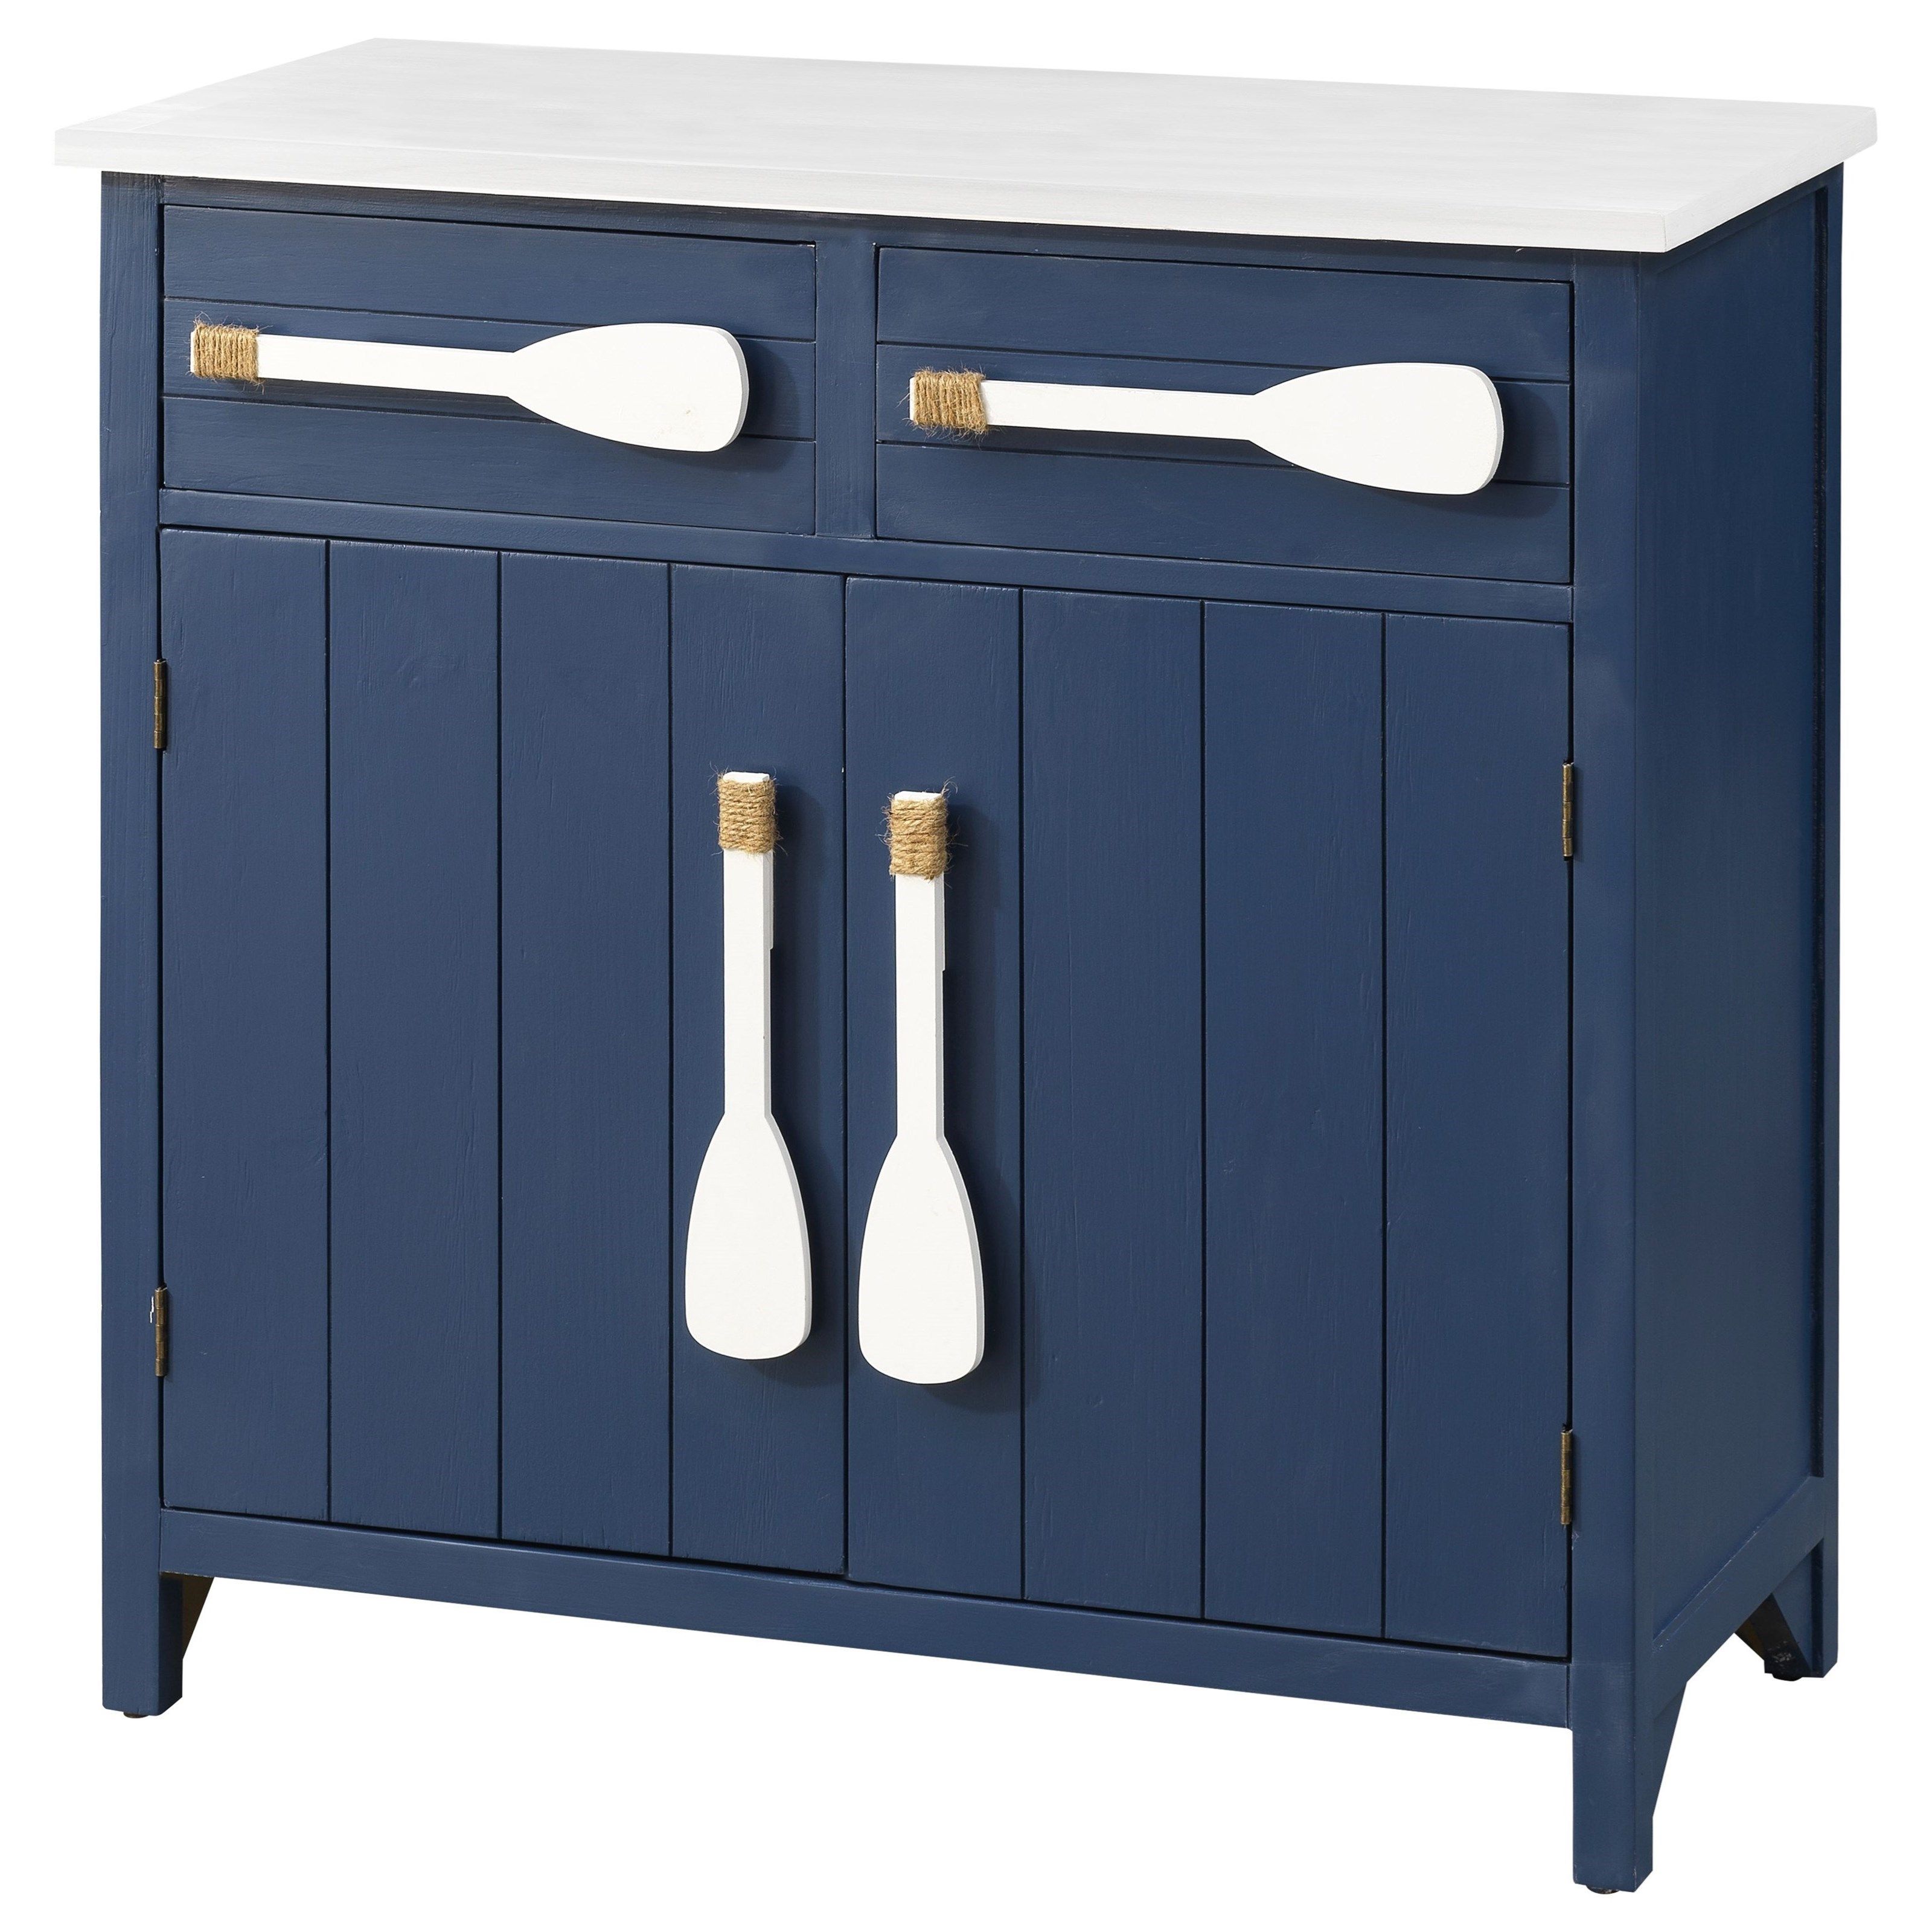 Pieces in Paradise 2-Drawer, 2-Door Cabinet by Coast to Coast Imports at Johnny Janosik